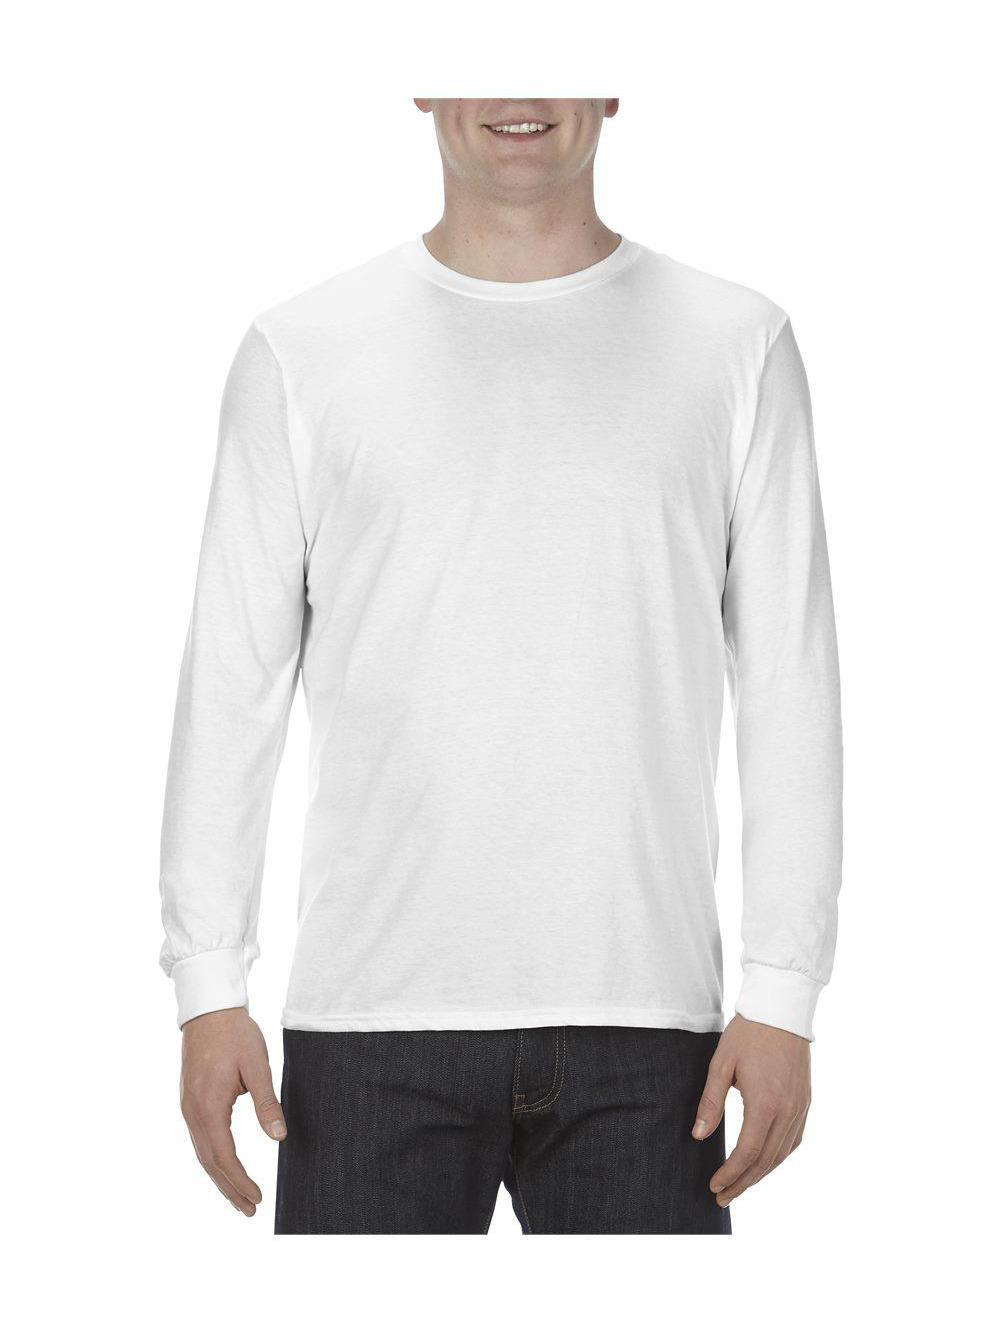 ALSTYLE-Ultimate-Long-Sleeve-T-Shirt-5304 thumbnail 19